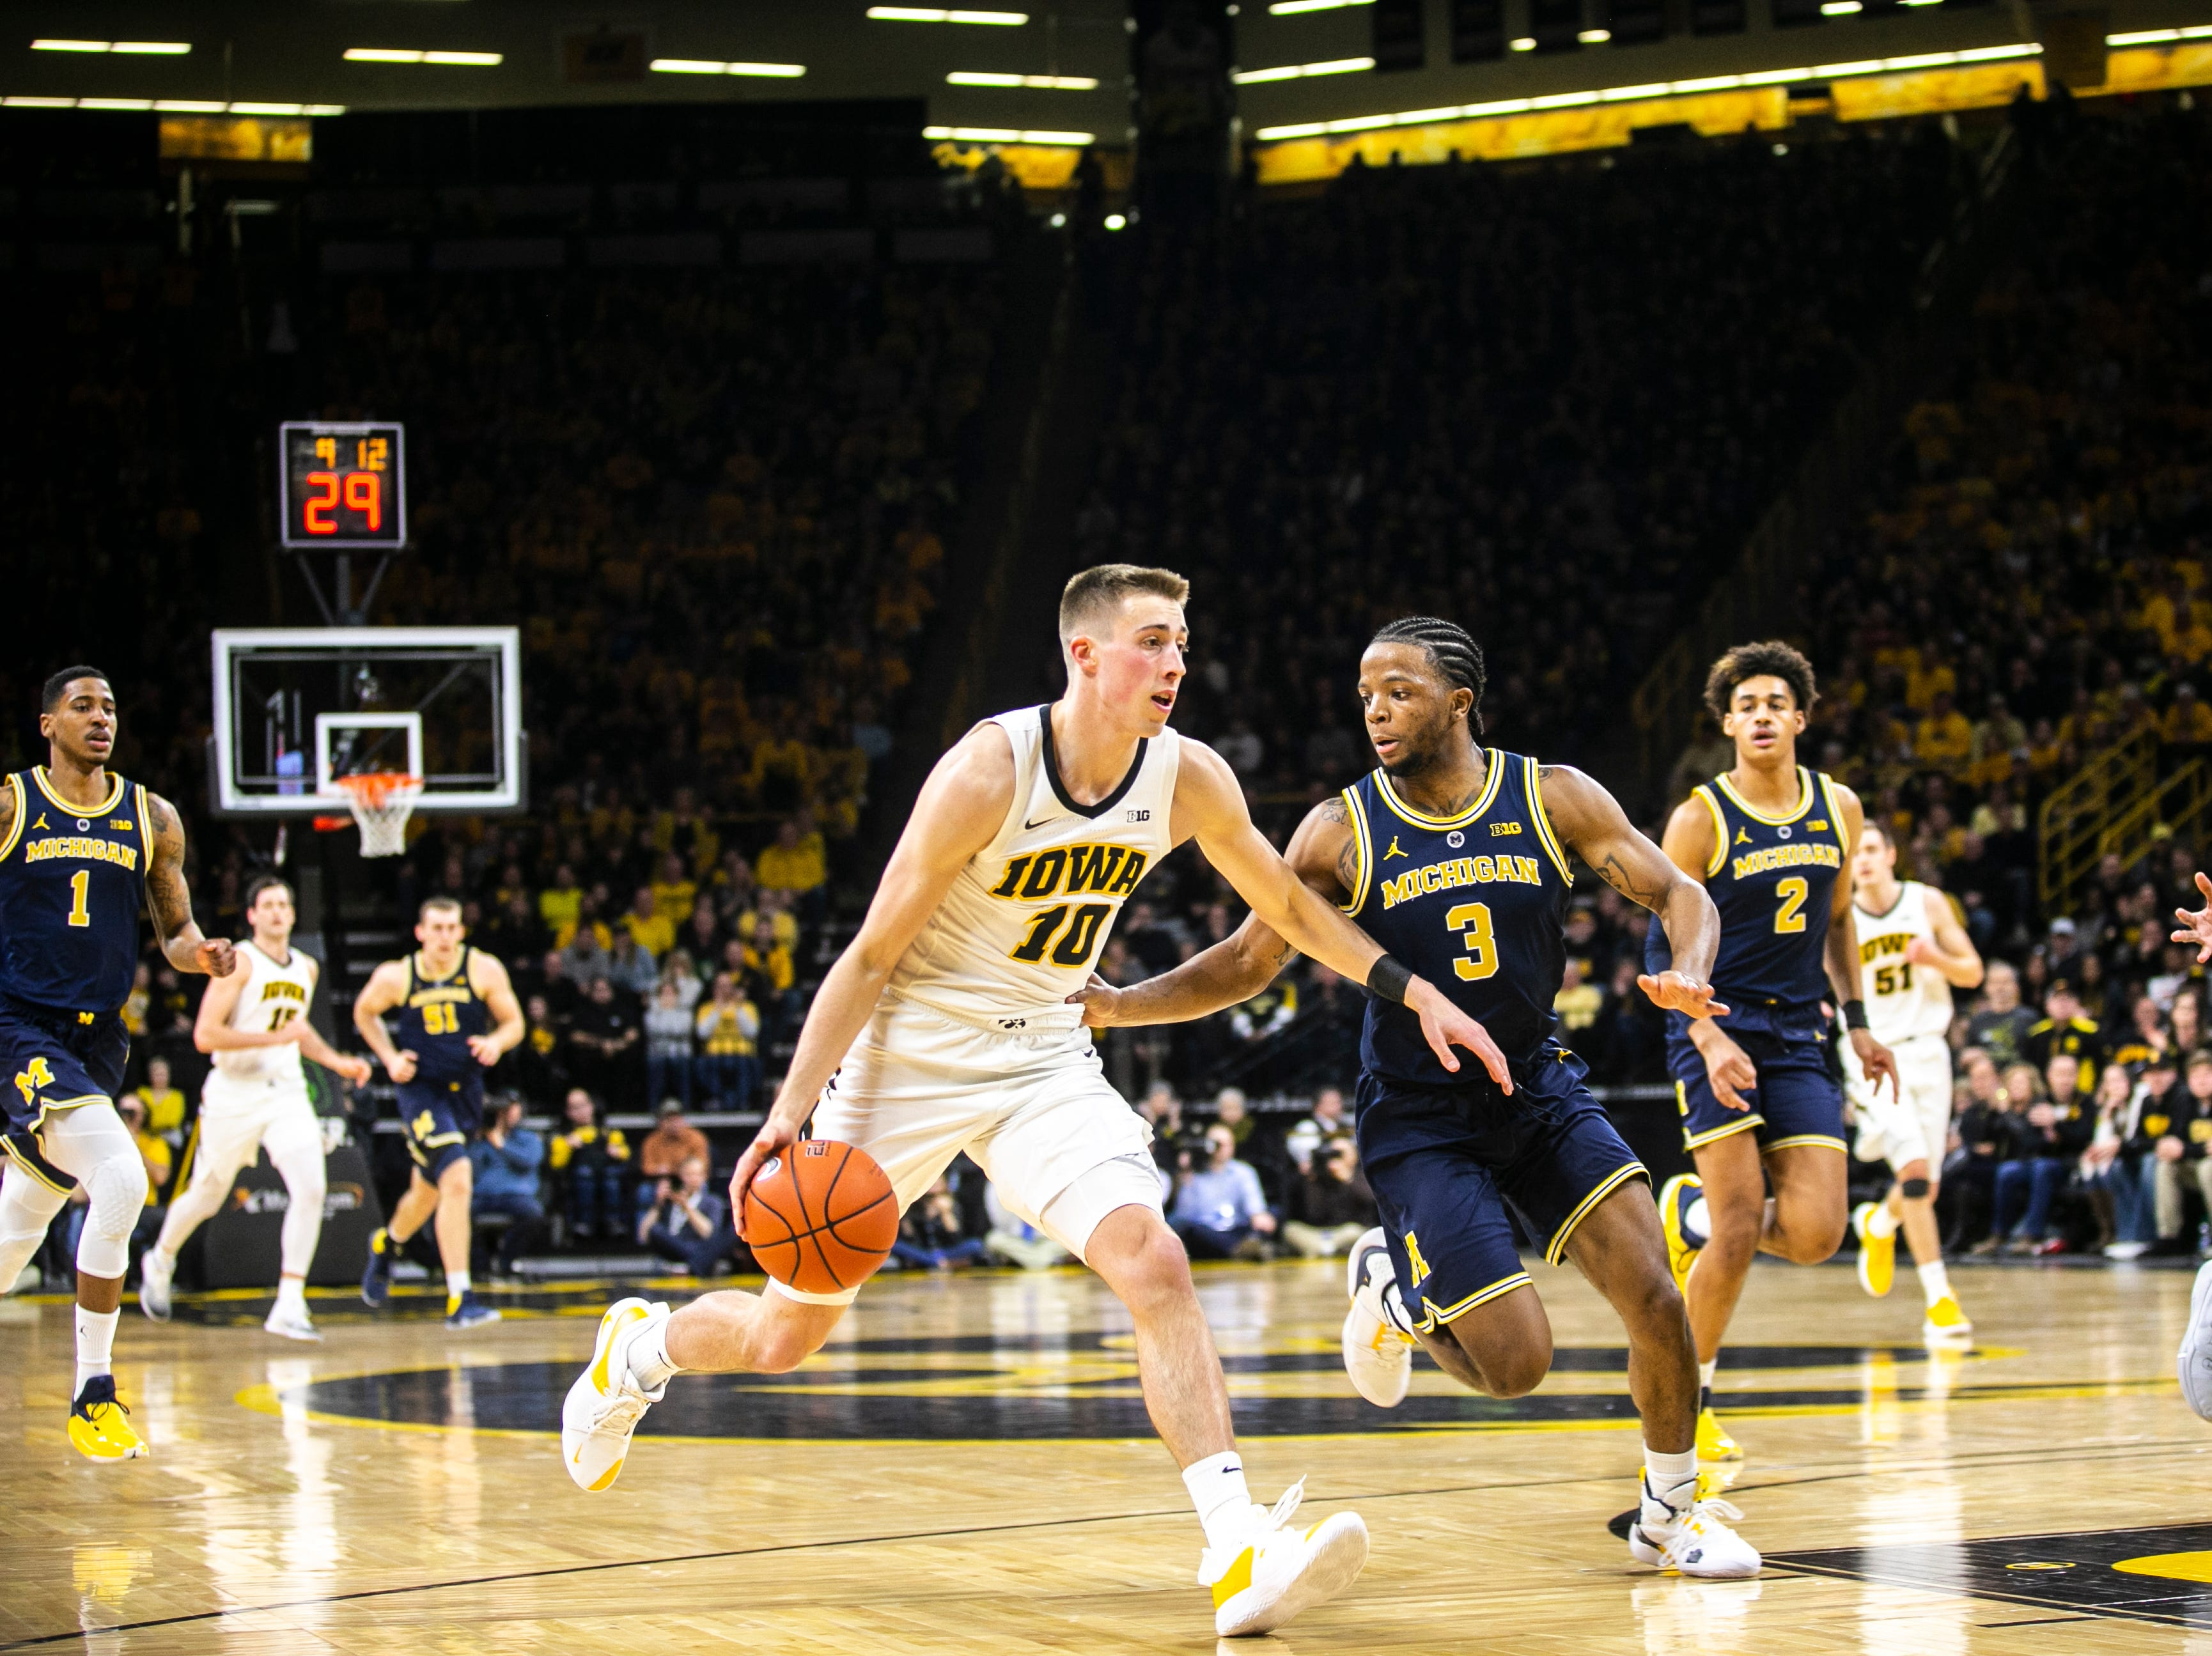 Iowa guard Joe Wieskamp (10) drives to the hoop past Michigan guard Zavier SImpson (3) after getting a steal during a NCAA Big Ten Conference men's basketball game on Friday, Feb. 1, 2019, at Carver-Hawkeye Arena in Iowa City, Iowa.